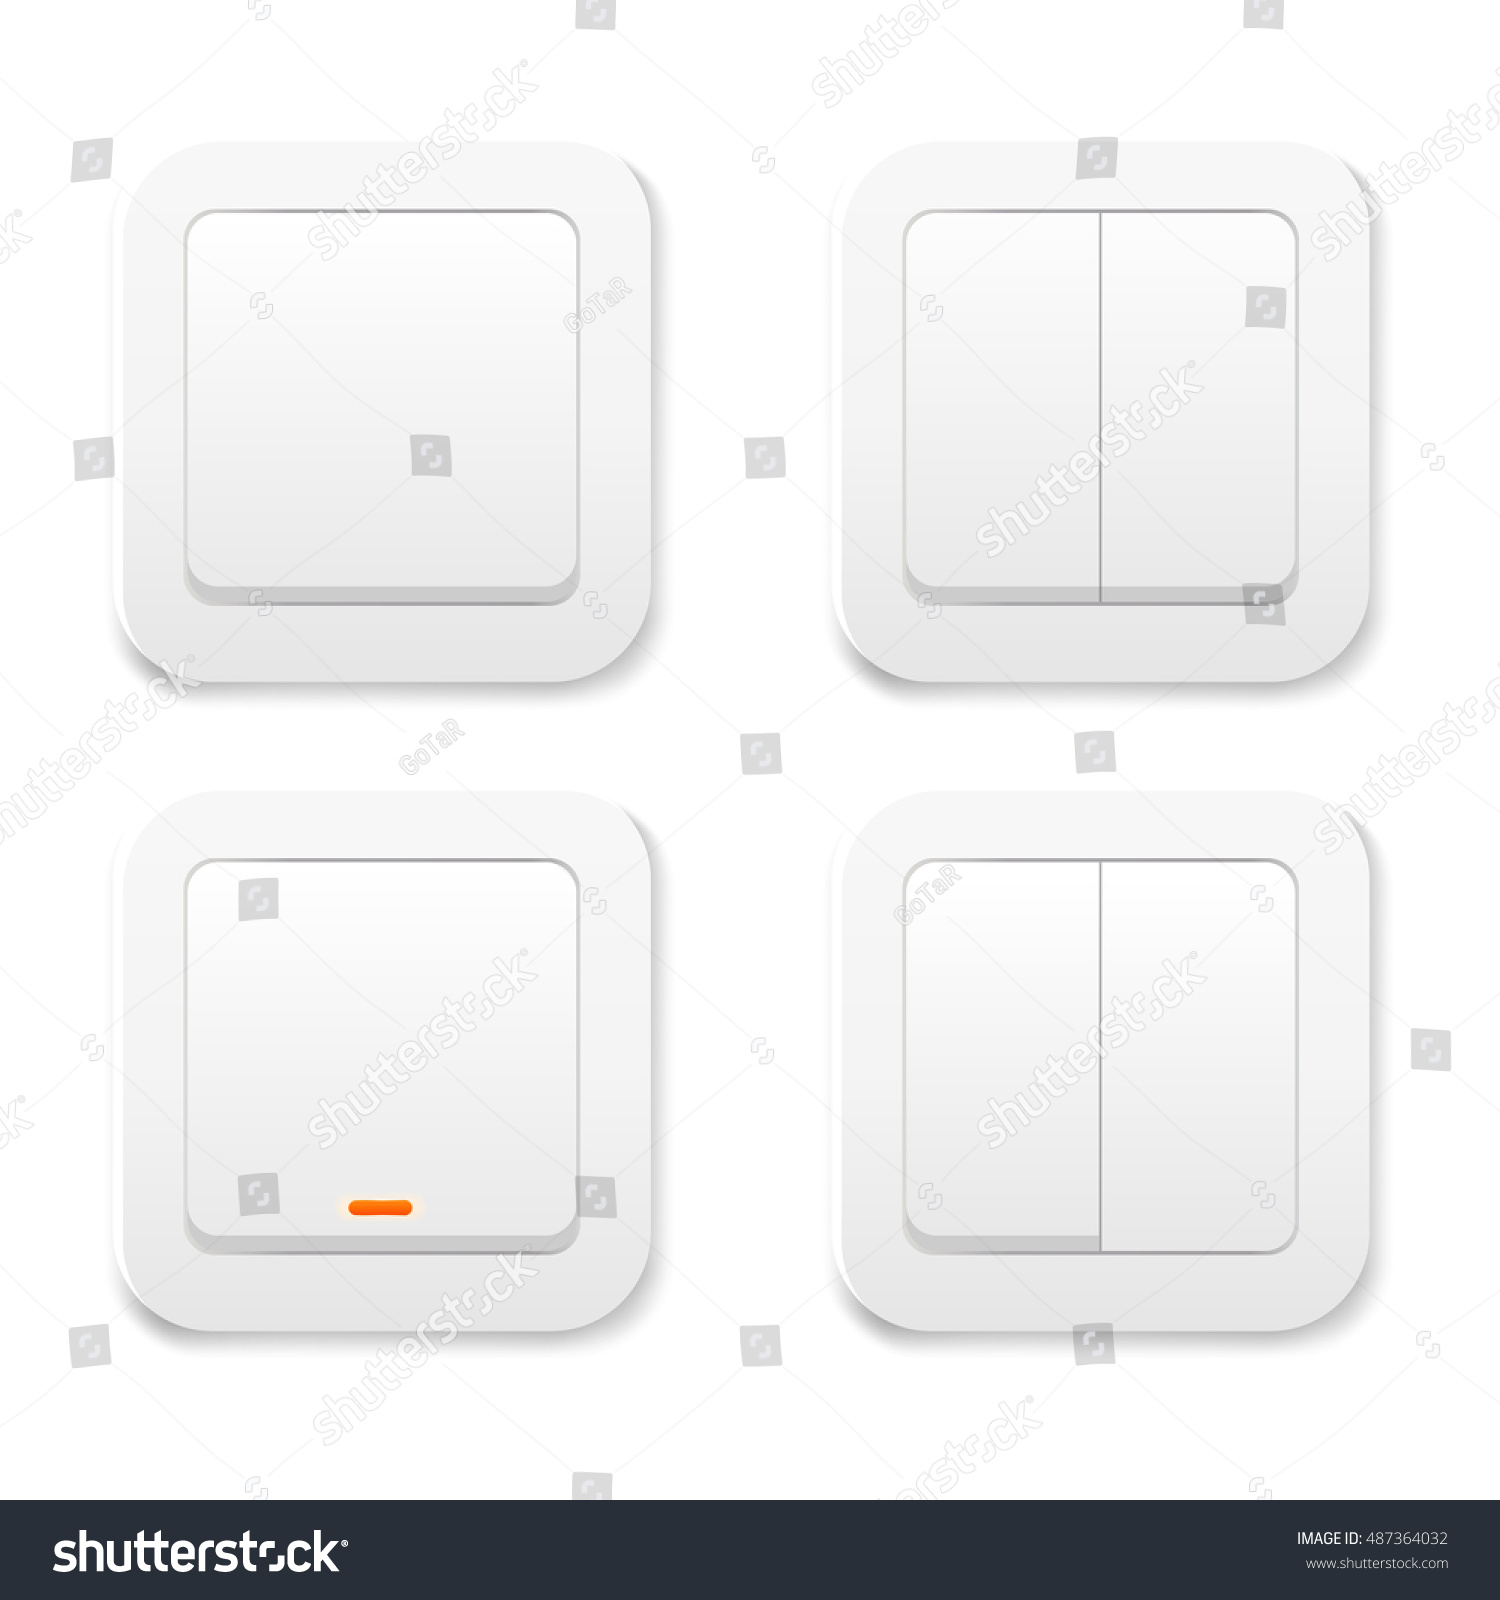 Light Switch Icon On Off Vector